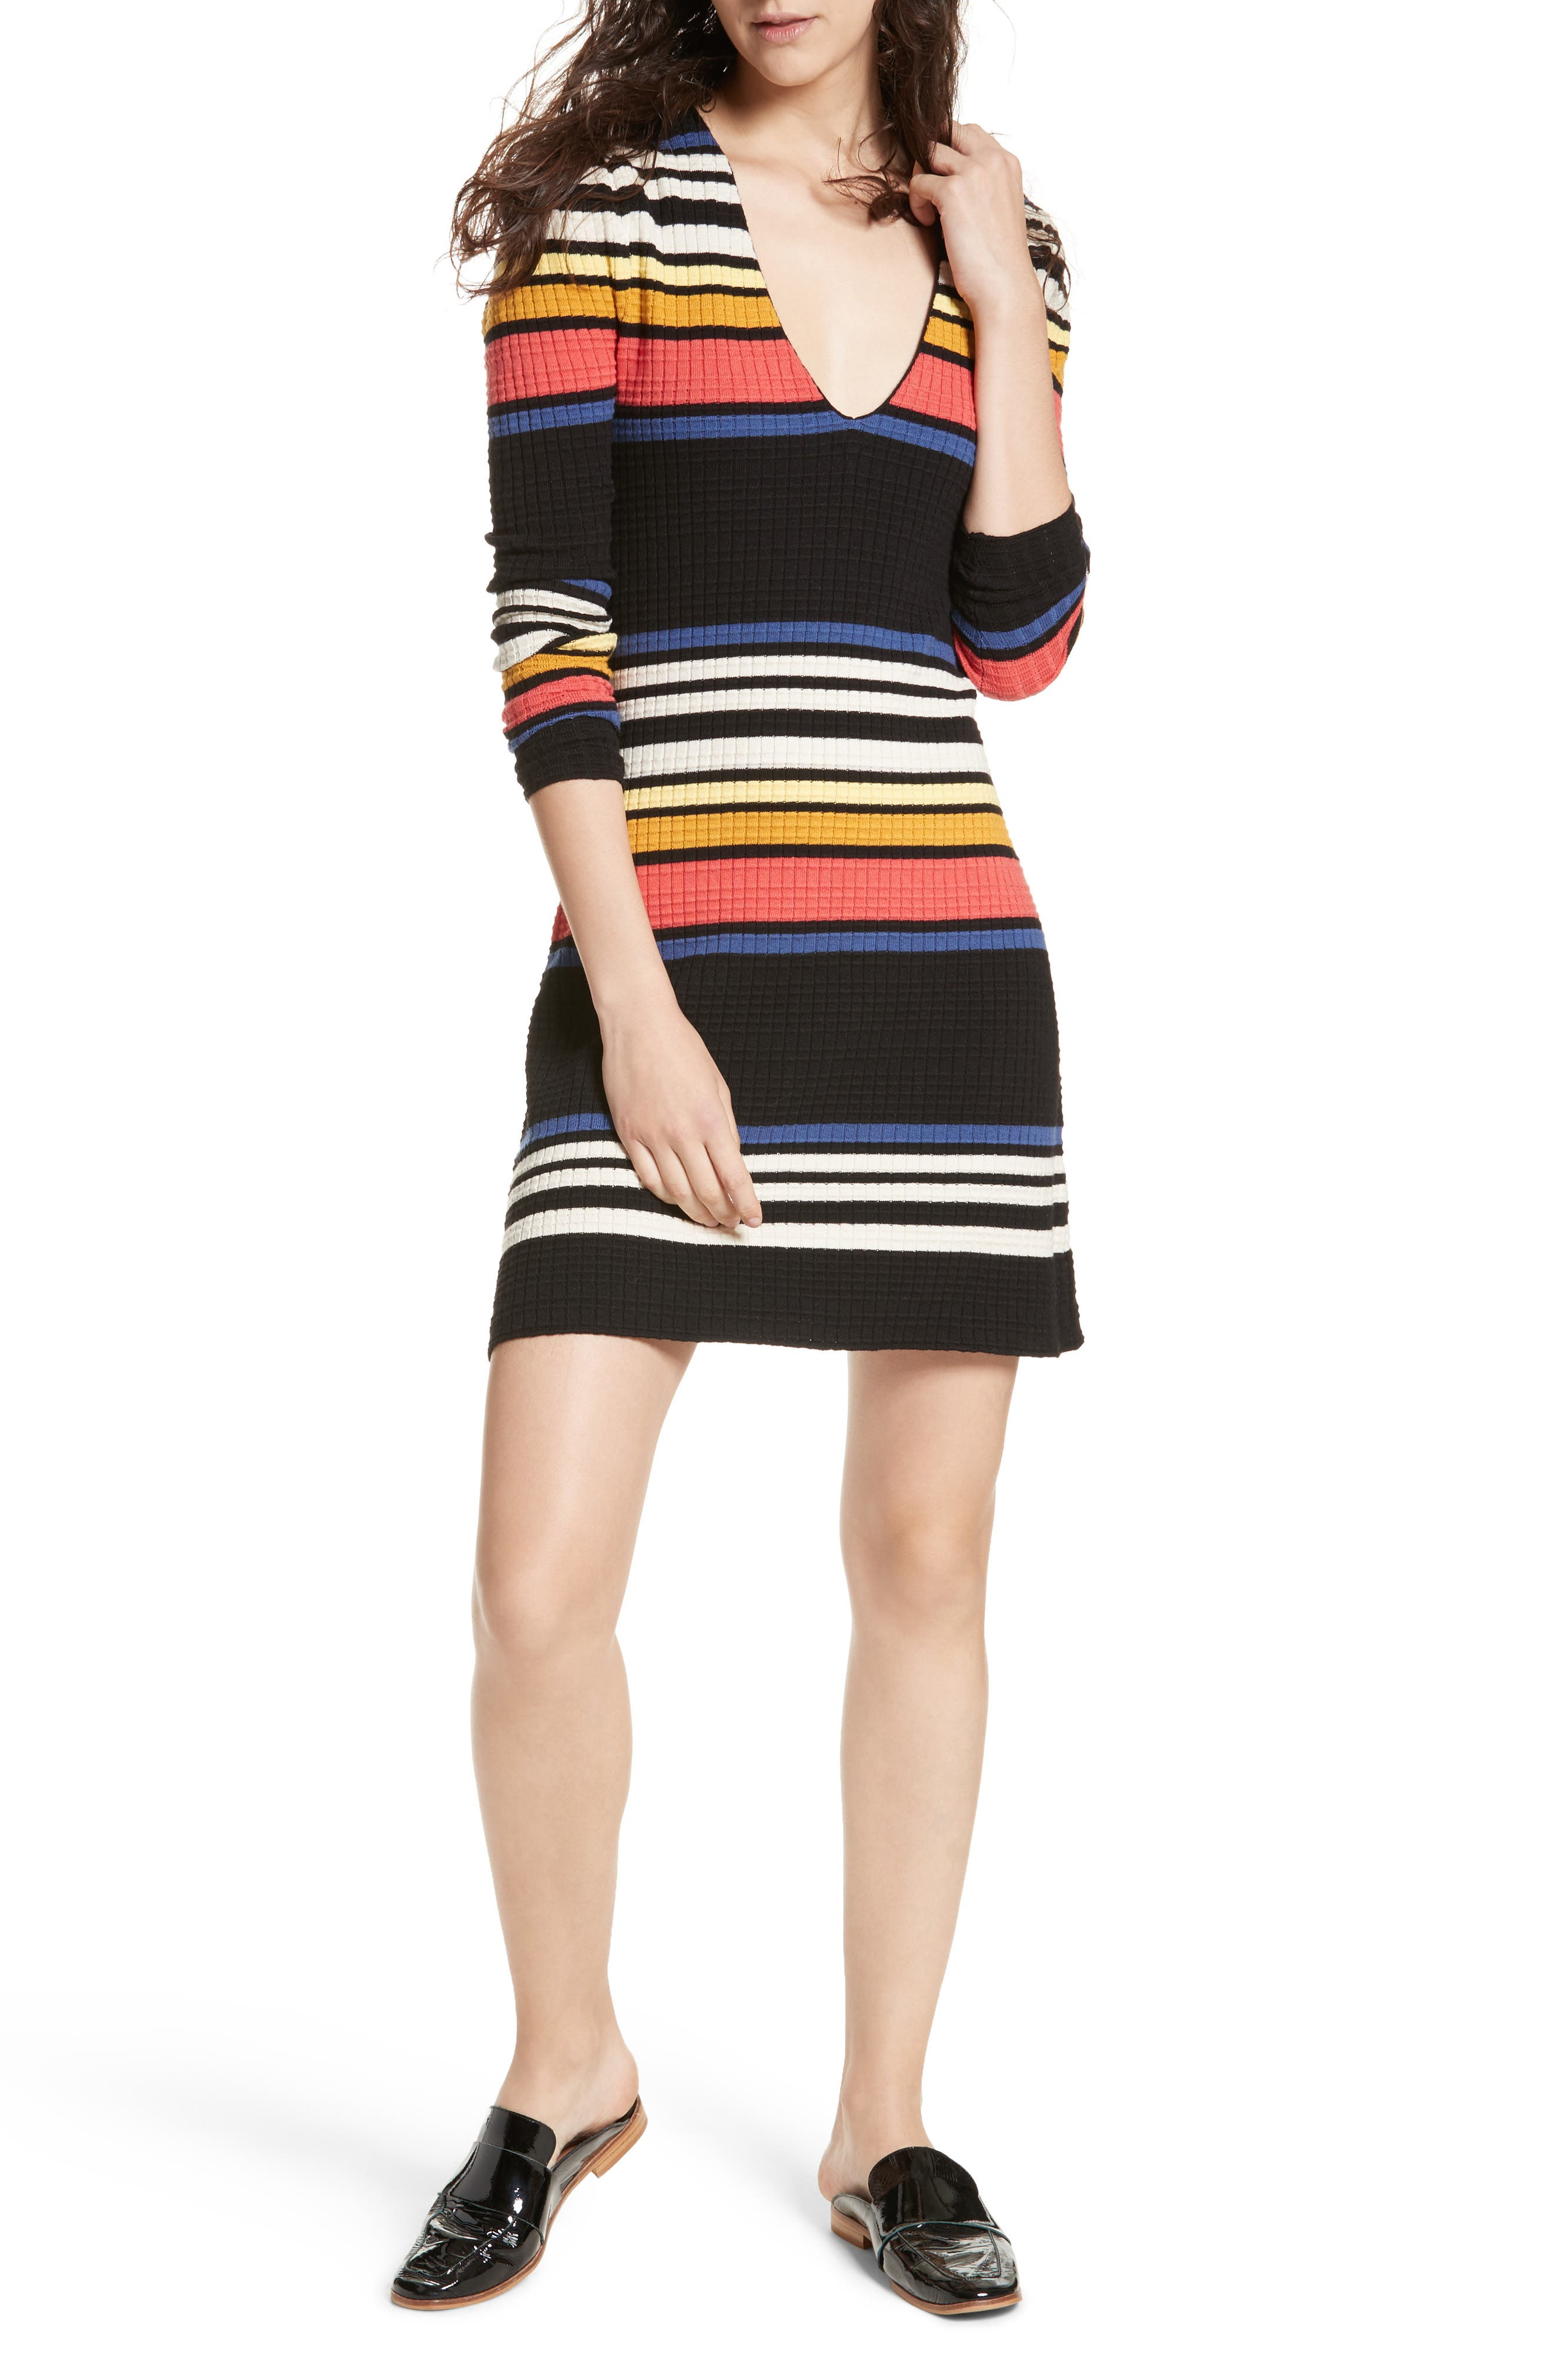 Gidget Sweater Dress,                             Main thumbnail 1, color,                             001